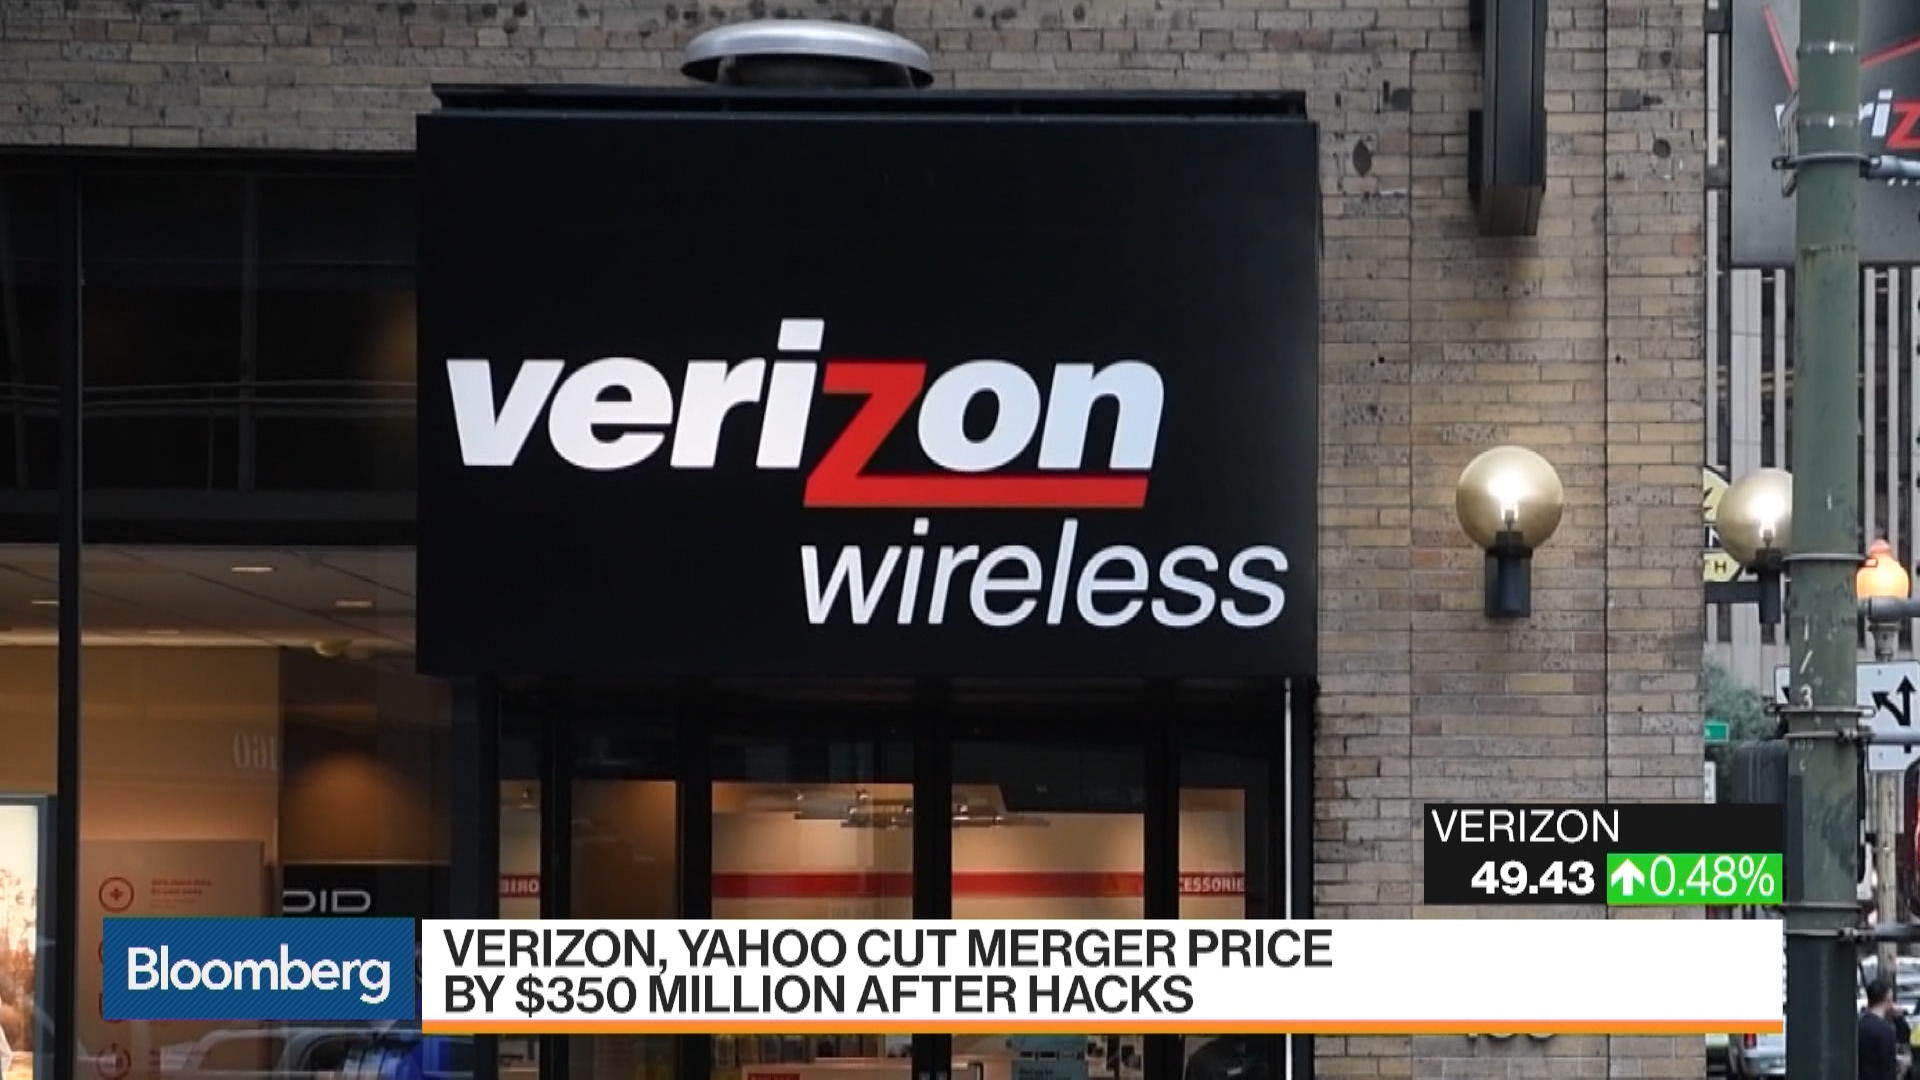 verizon finance In the first half of 2018, oath generated $38 billion in revenues for verizon (vz), implying an annual revenue rate of $76 billion oath aims to generate $100 billion-$200 billion in annual revenues by 2020, and it aims to reach 20 billion people by 2020 sprint corp has been unable to.